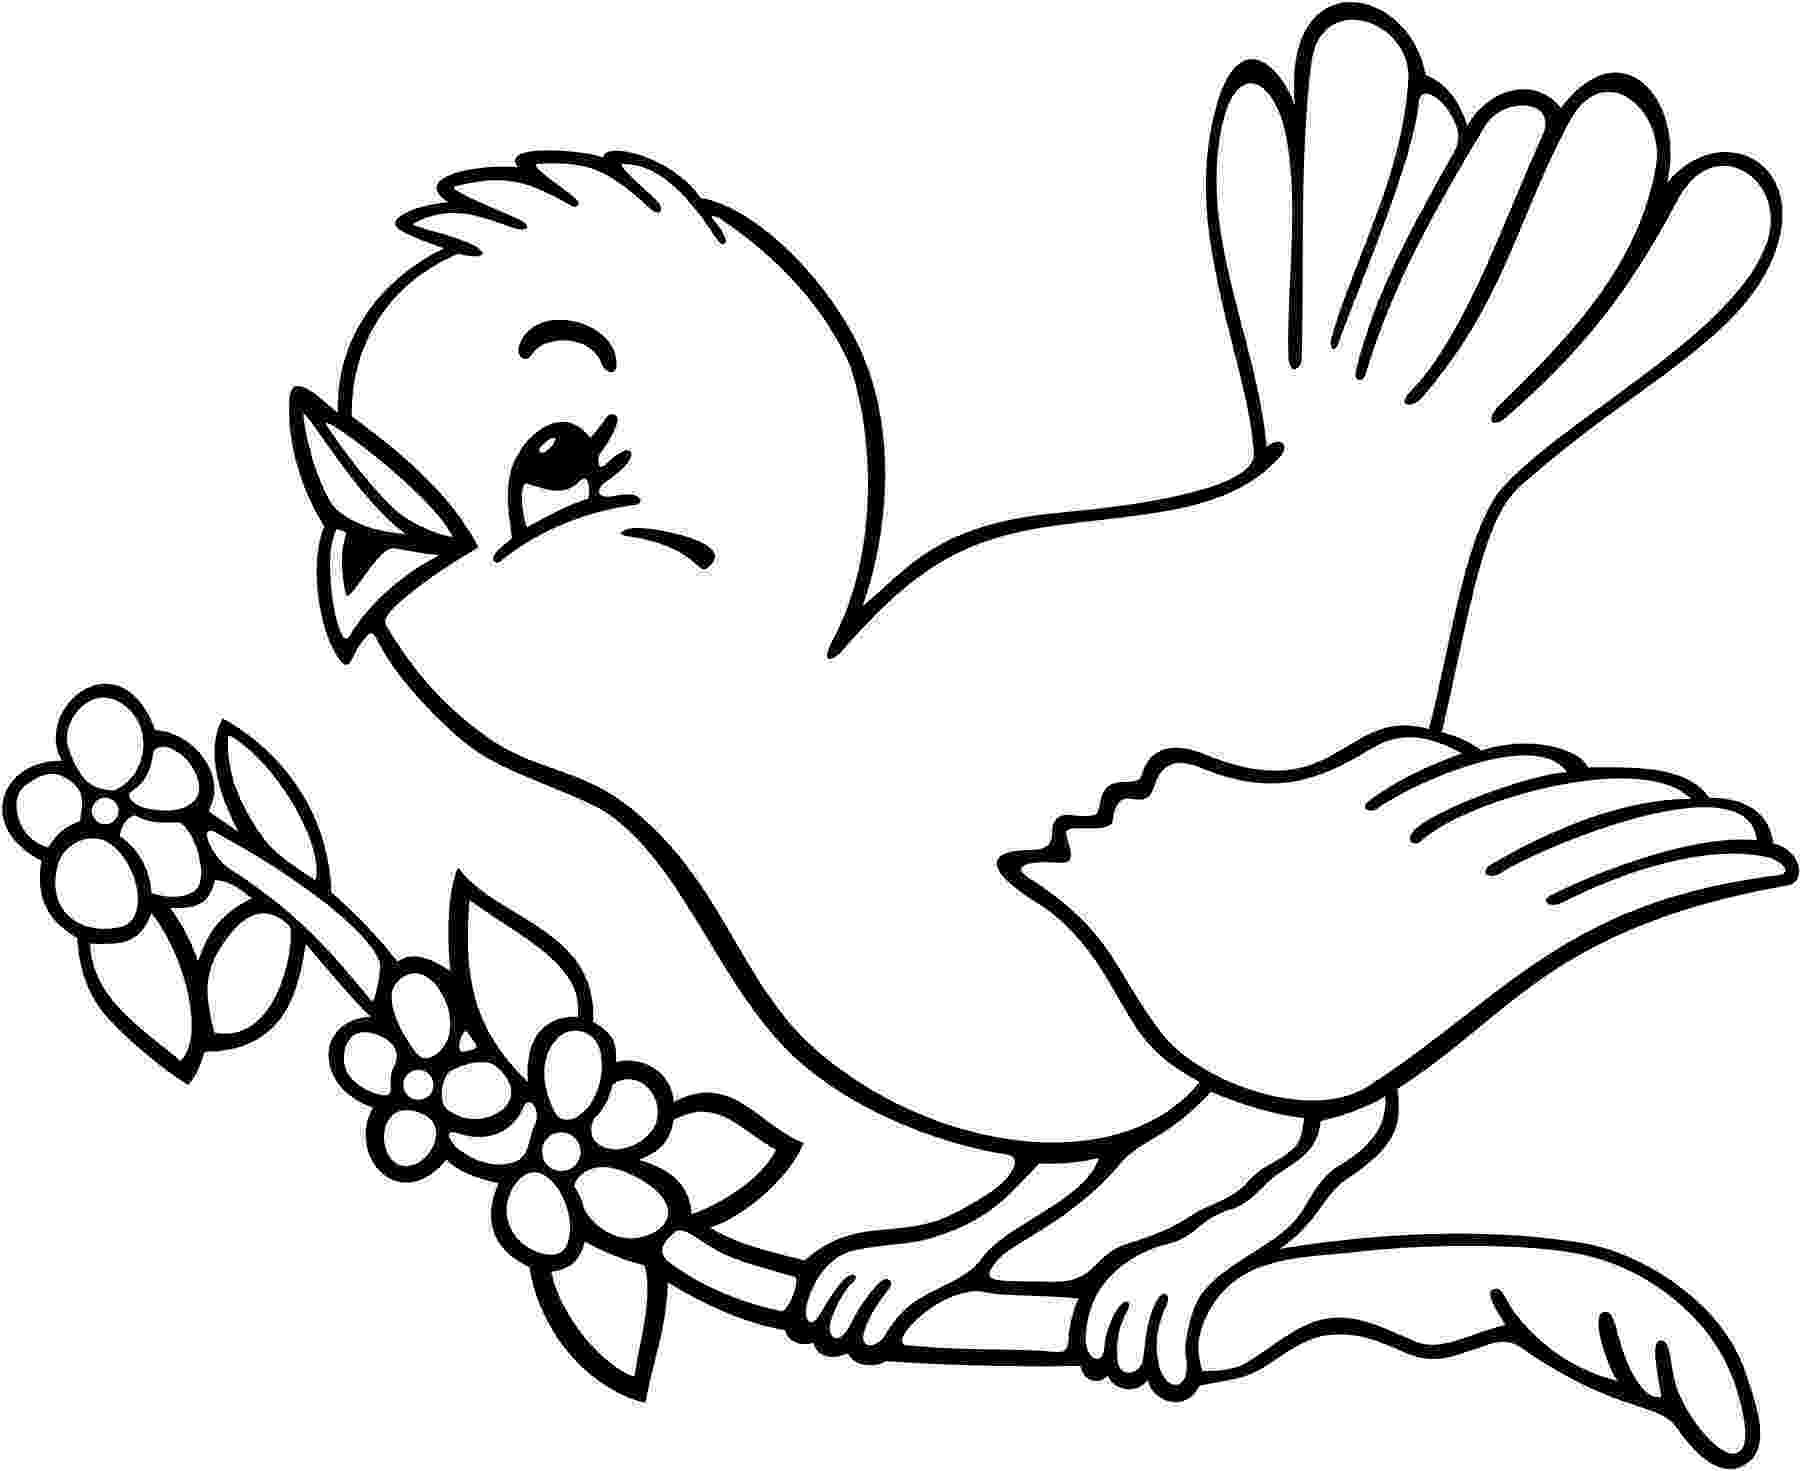 bird coloring pages to print bird coloring pages bird coloring pages to print